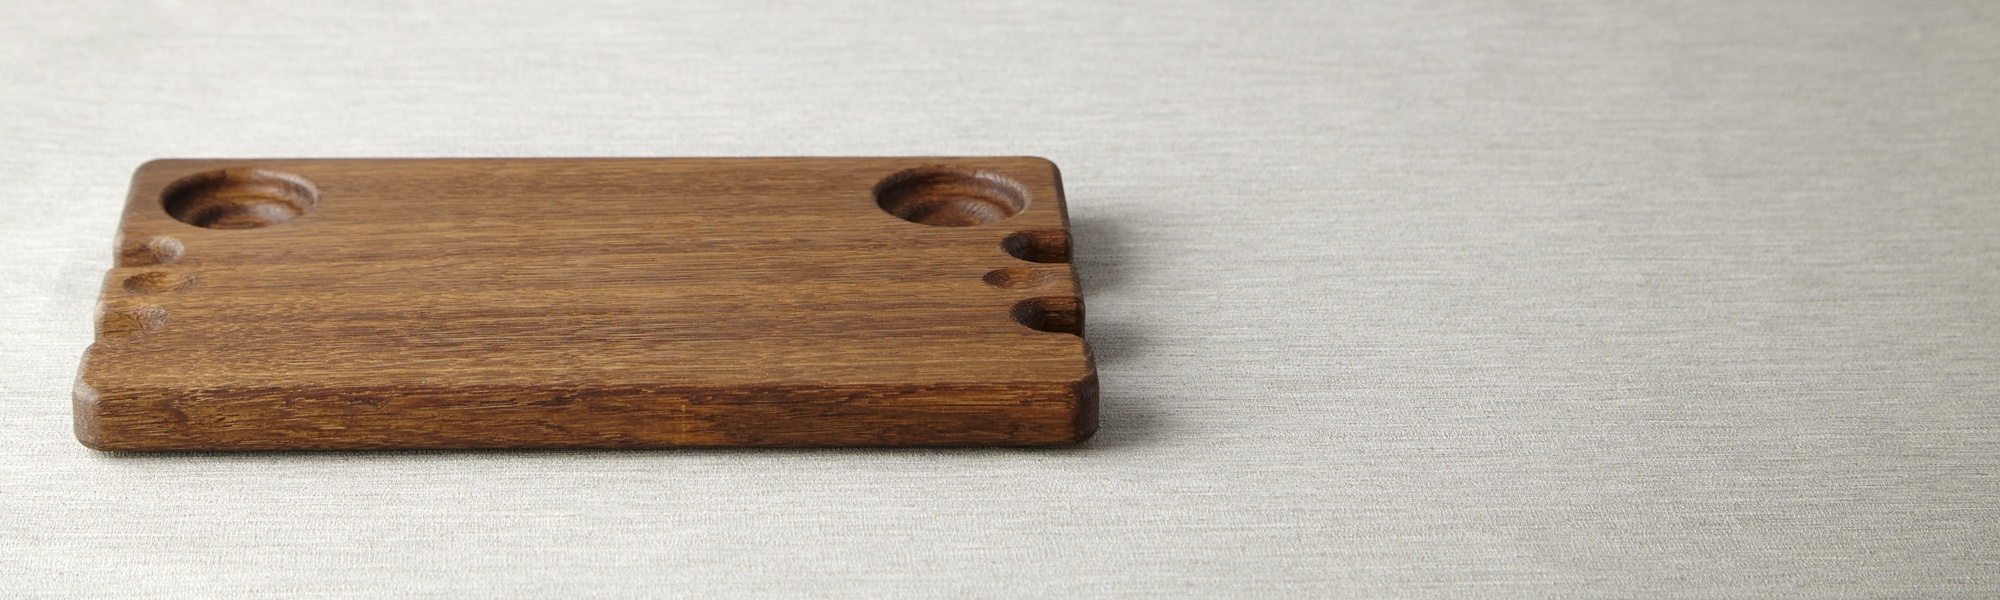 02. Cheeseboard Fumed.jpg